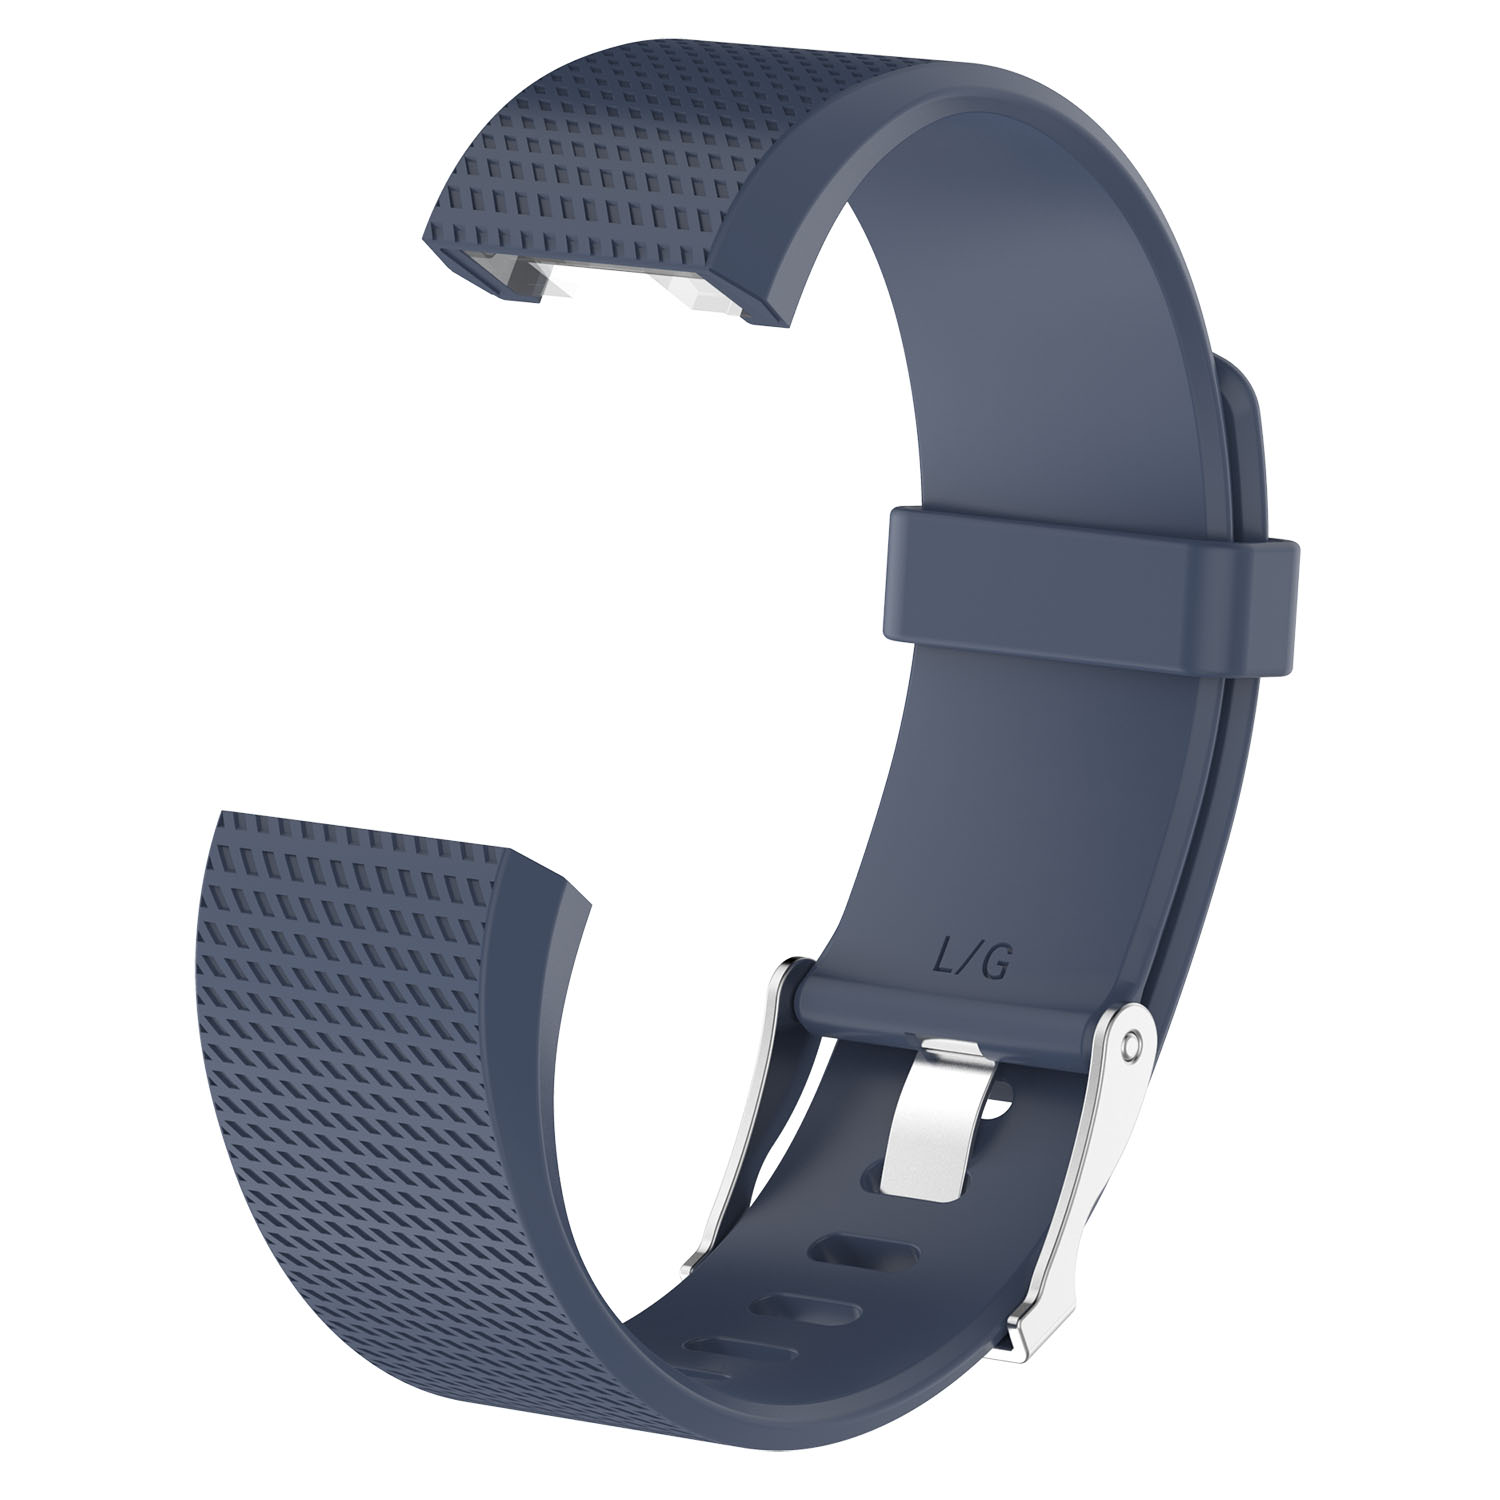 Replacement-Silicone-Wristband-Watch-Strap-Bands-Bracelet-For-Fitbit-Charge-2 thumbnail 75